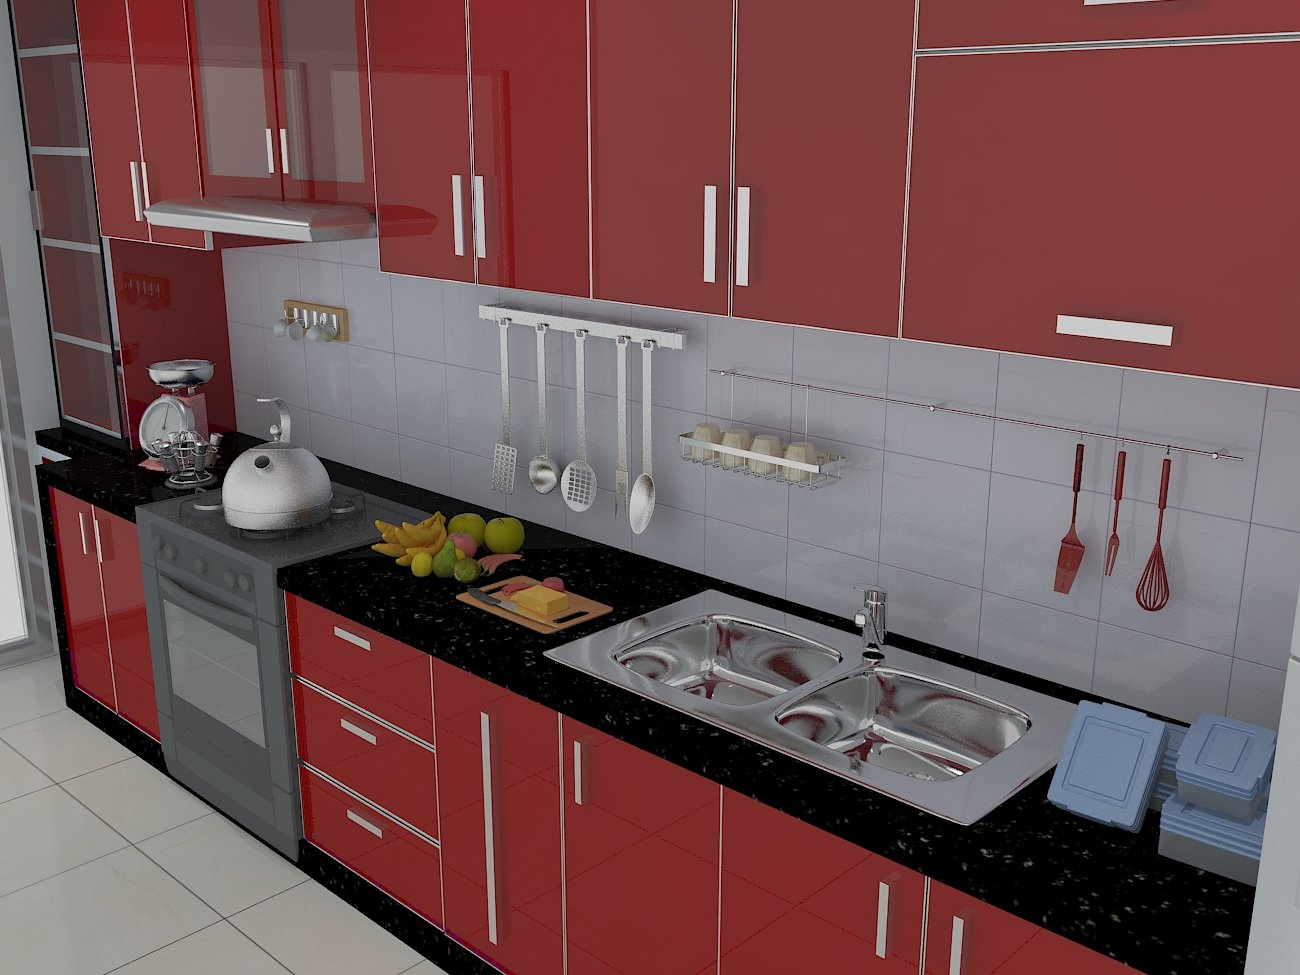 Kitchen Design 3d Model Kitchen Design 3d 3d Model In Kitchen 3dexport